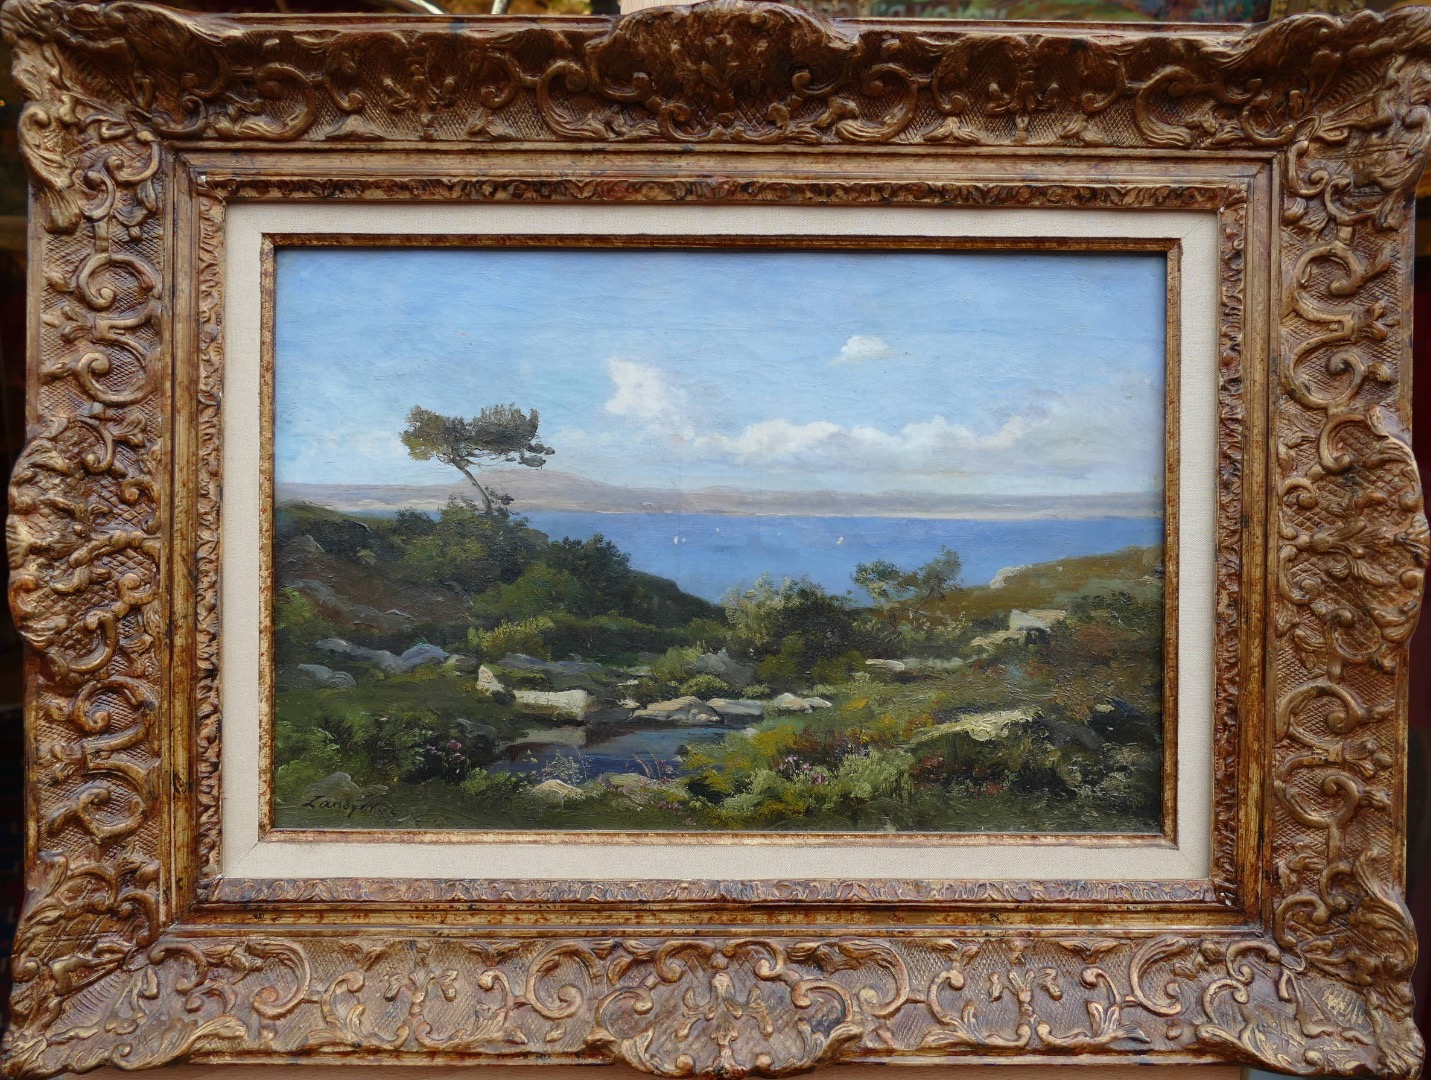 LANSYER Emmanuel Painting 19Th Century Mediterranean Landscape Oil On Canvas Signed And Dated